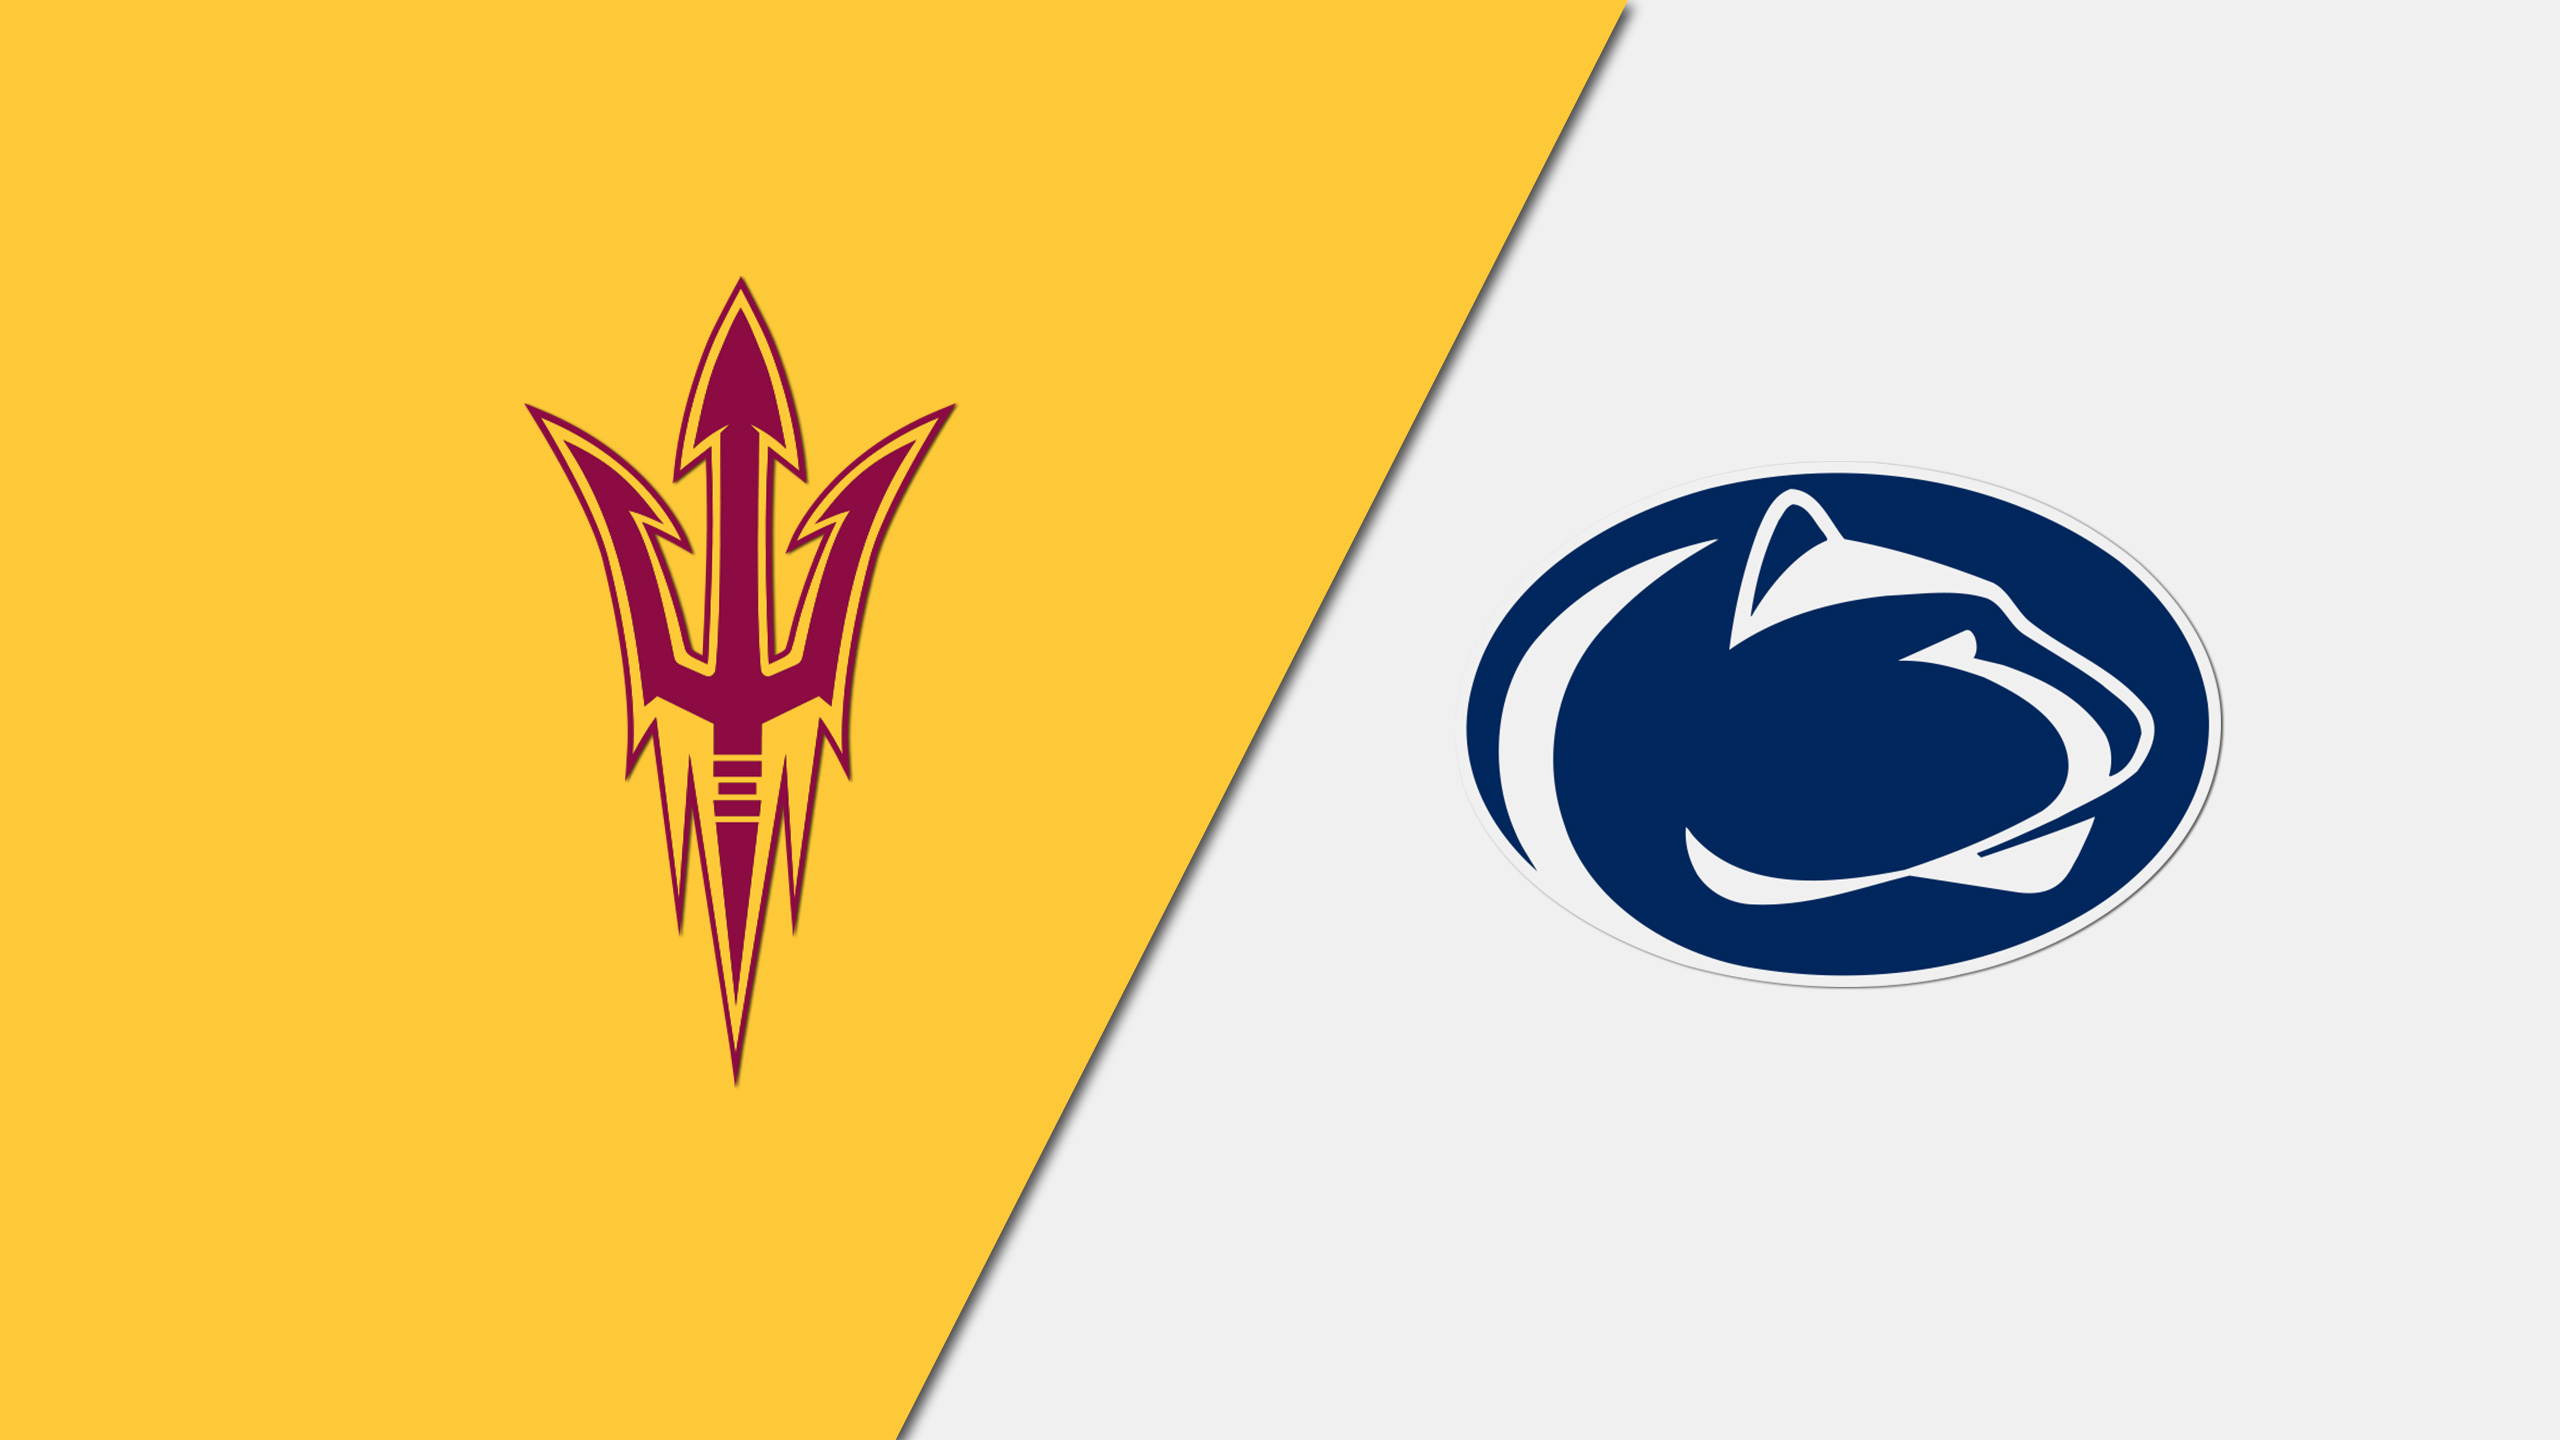 Arizona State vs. Penn State (Wrestling)